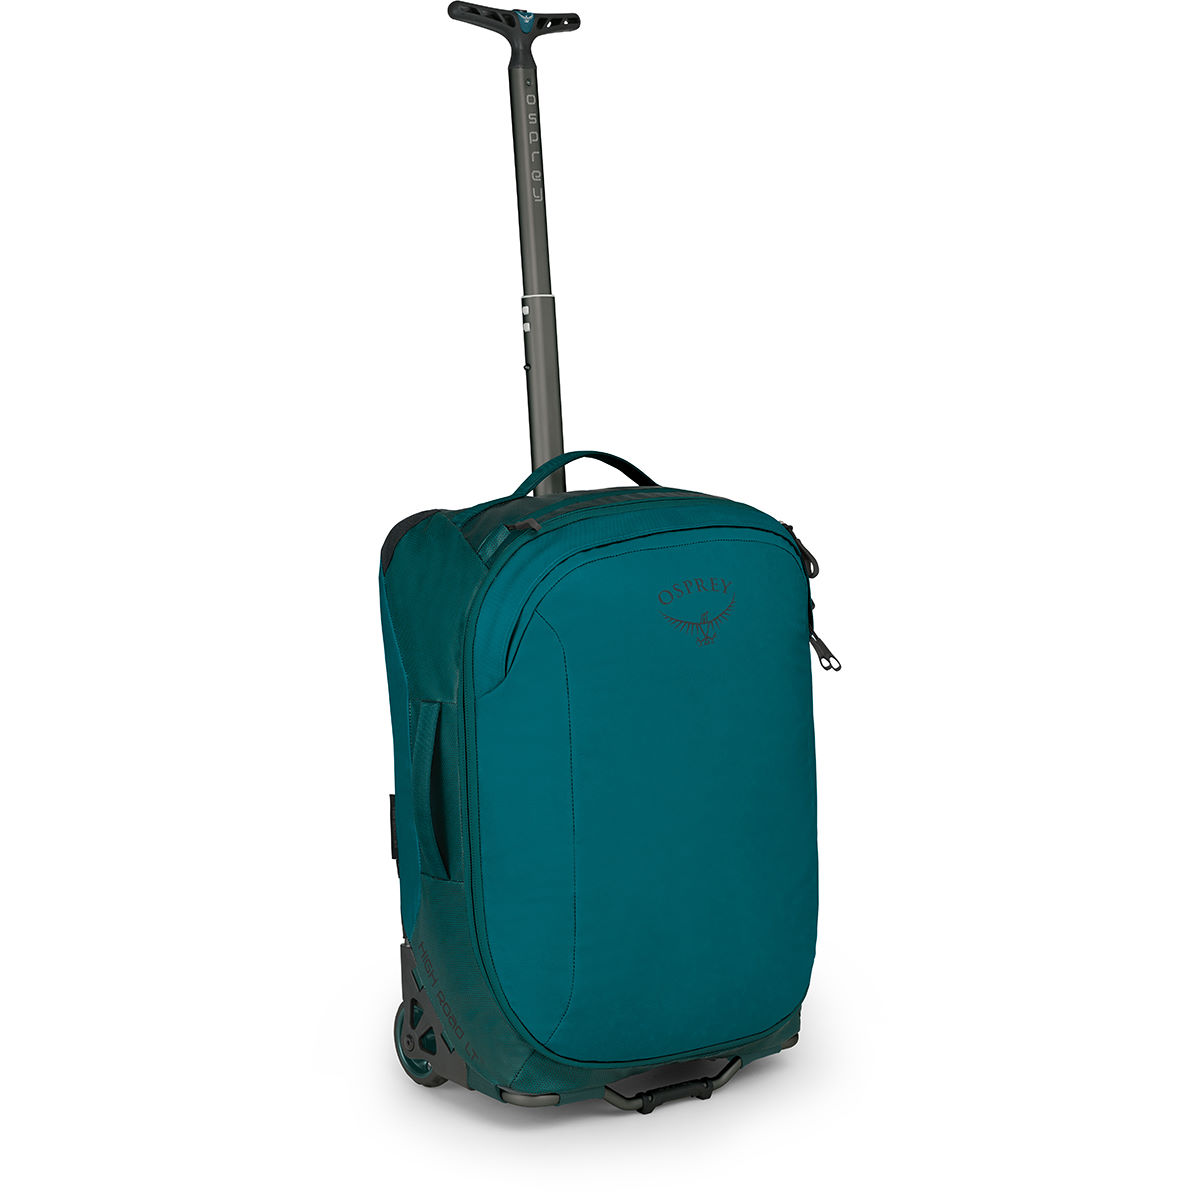 Osprey Osprey Rolling Transporter Carry-On 38 Bag   Travel Bags